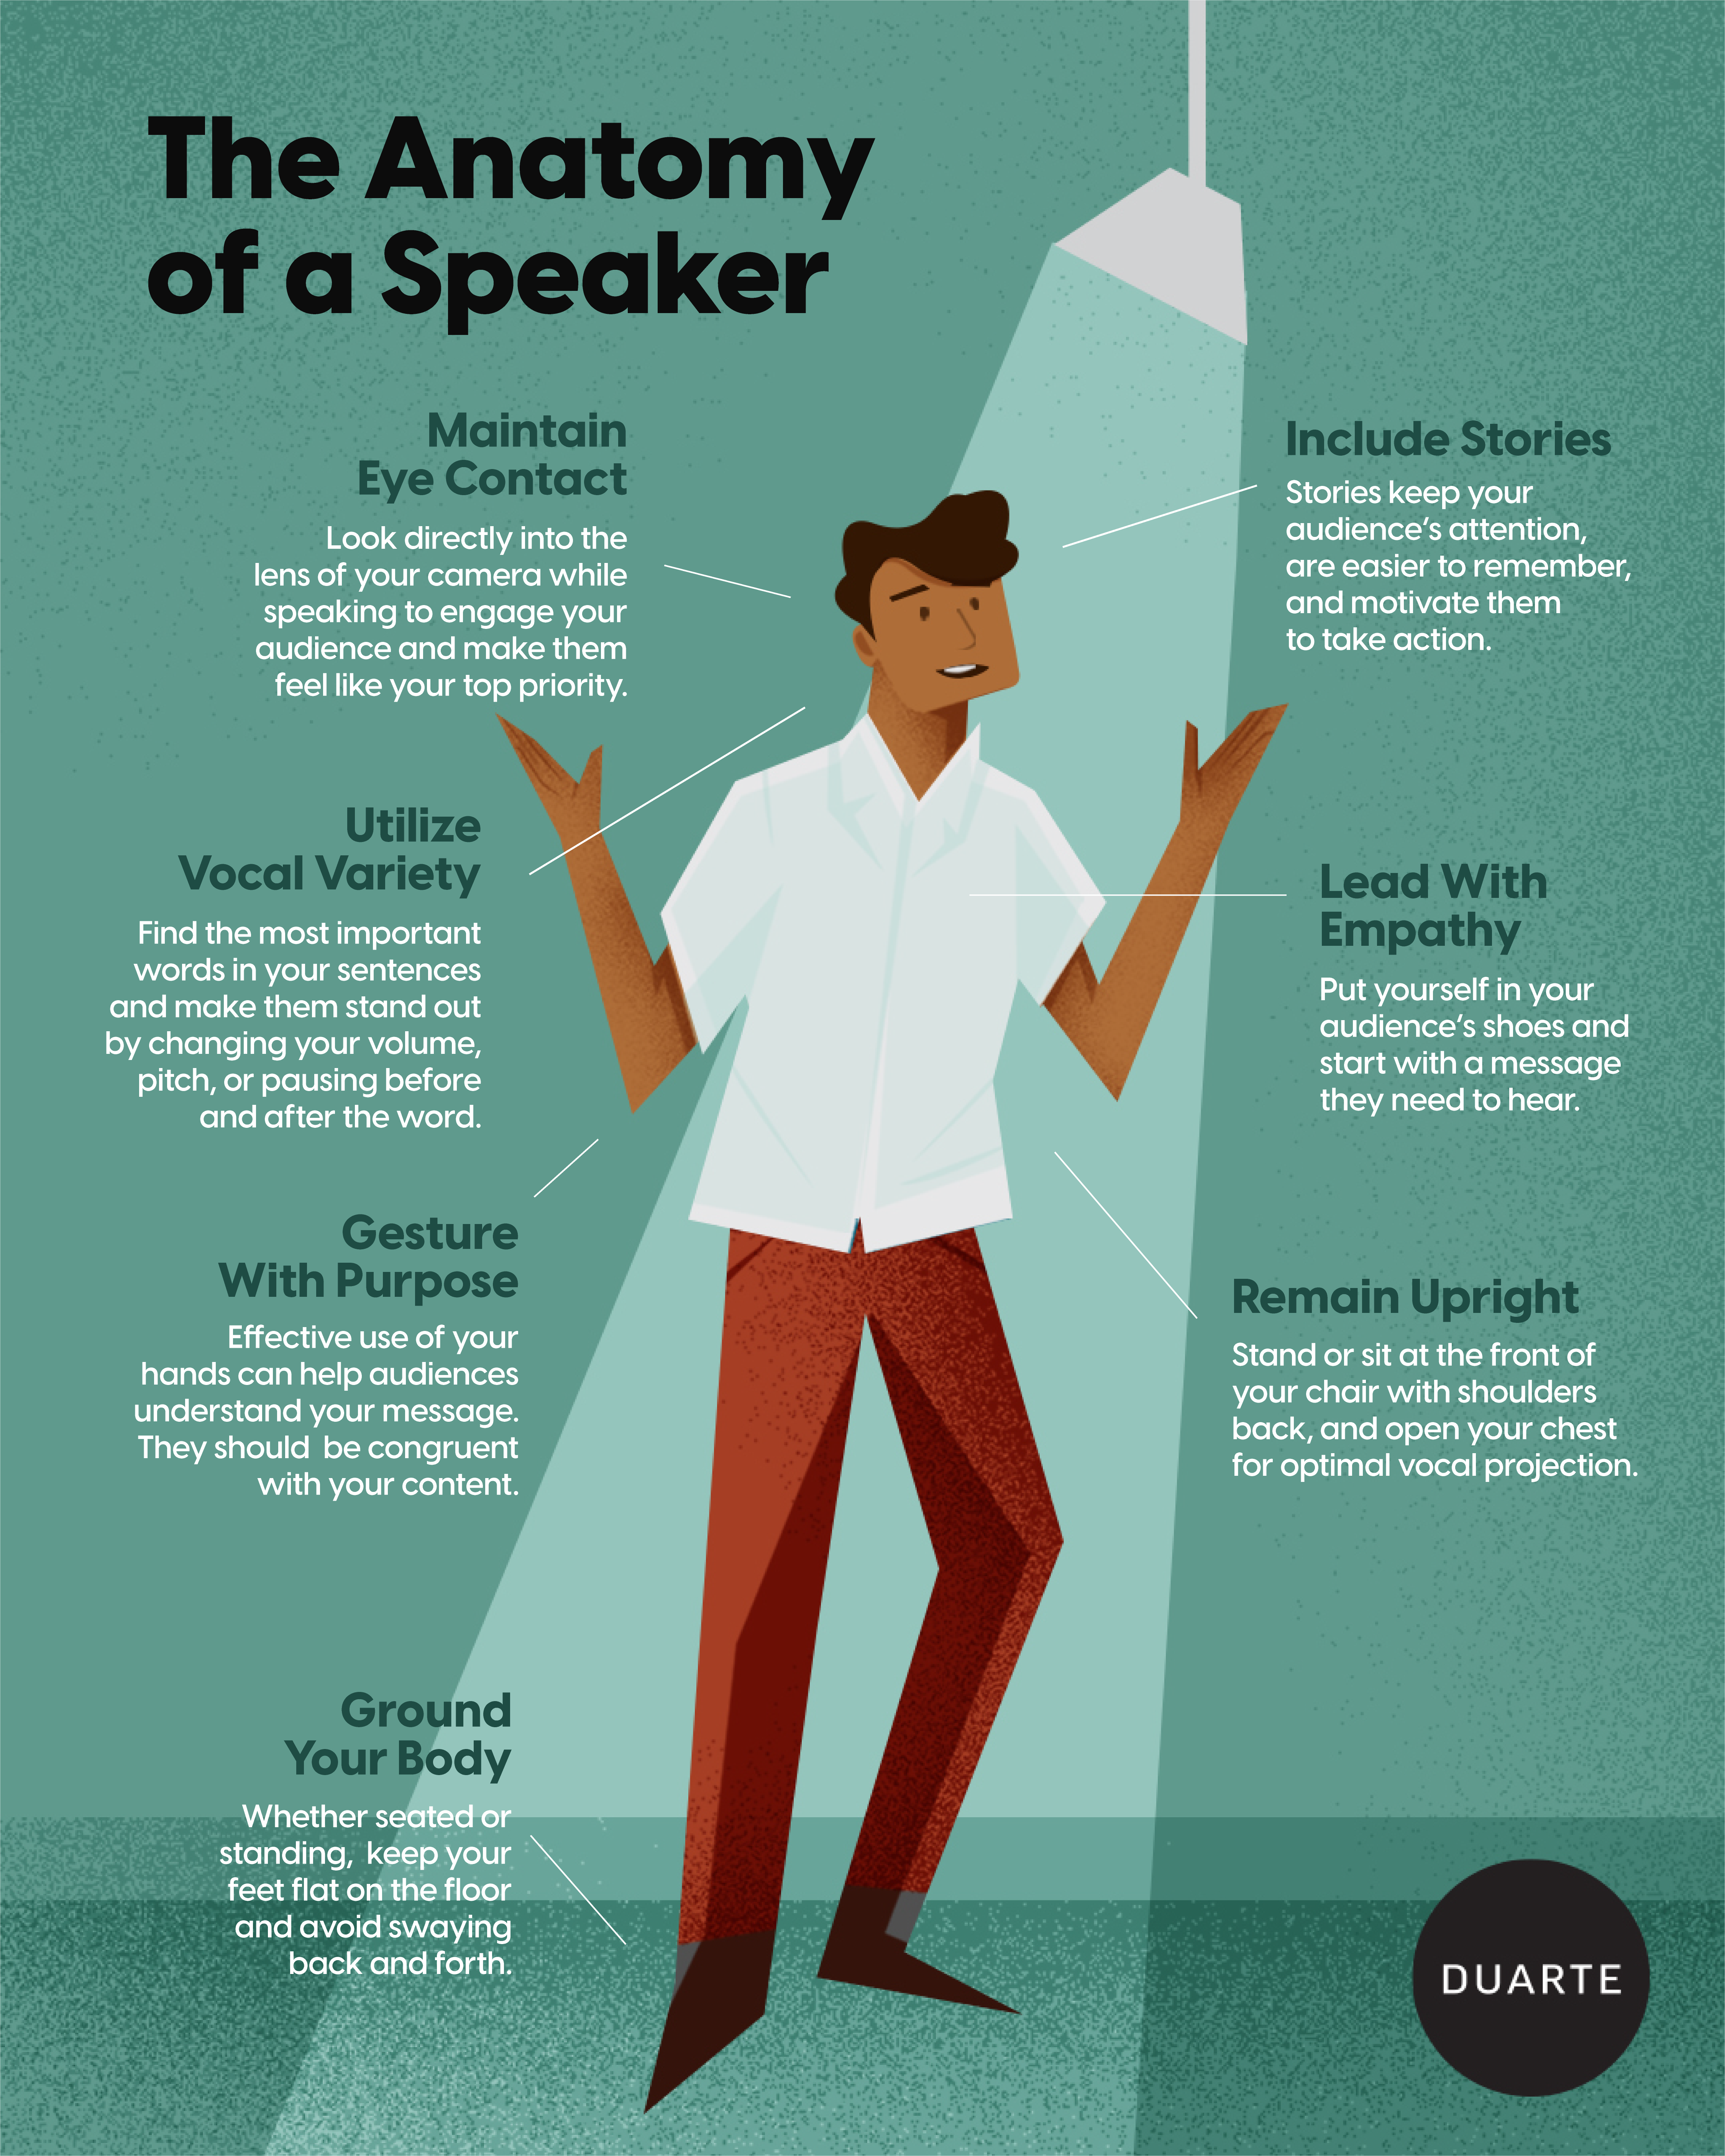 Anatomy of a Speaker Infographic